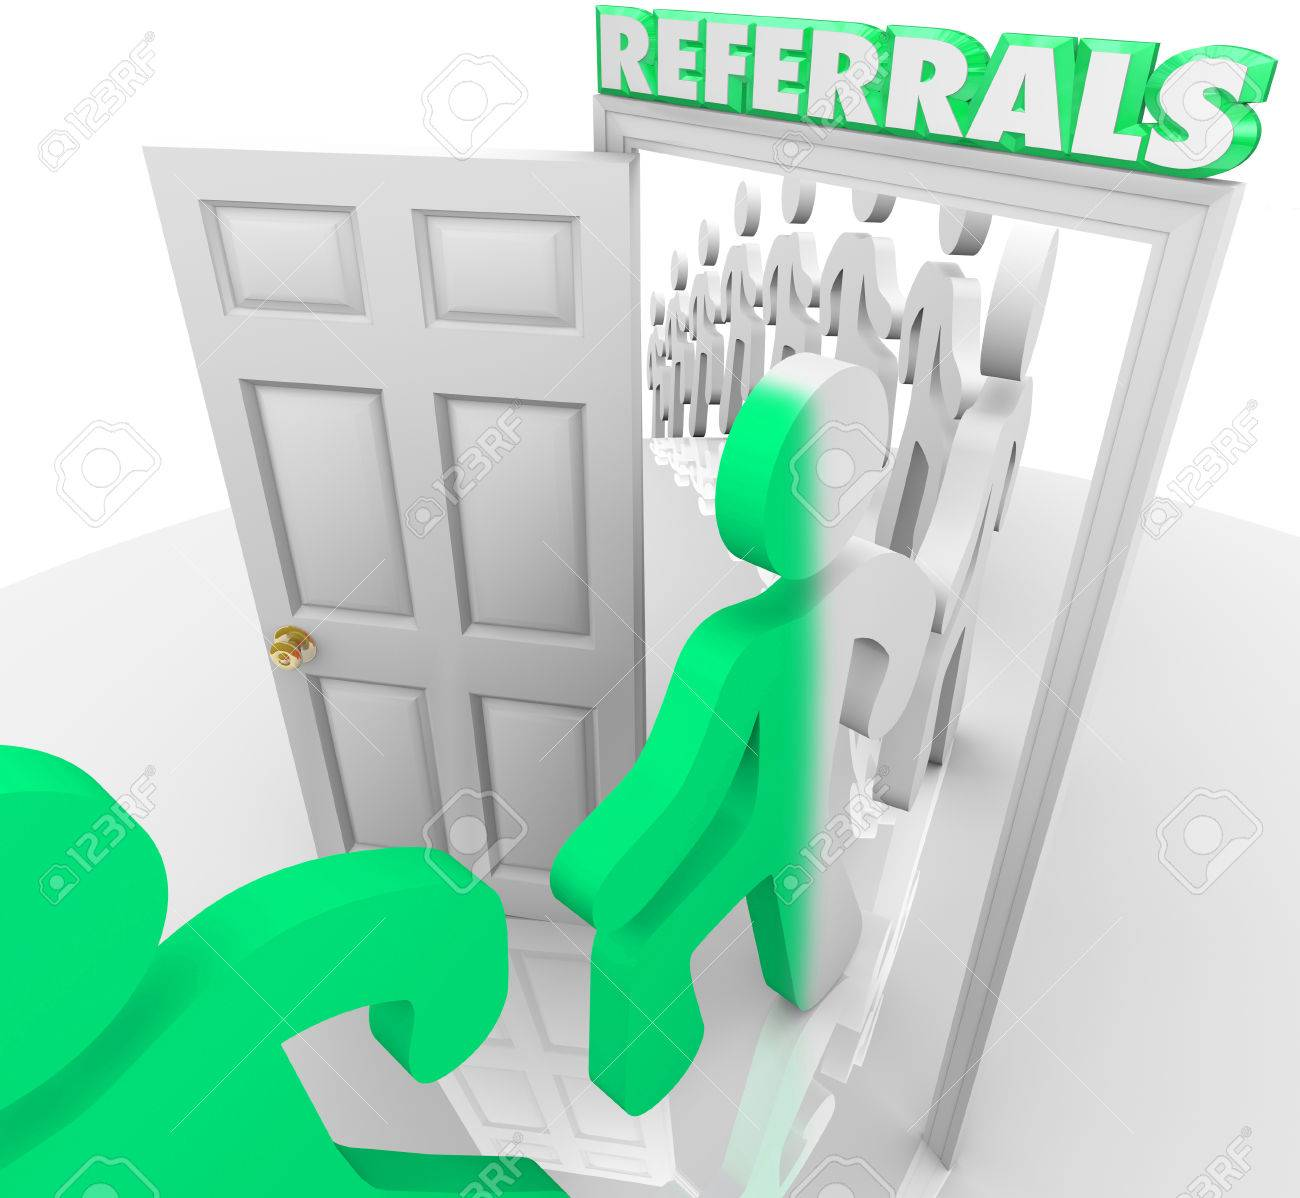 Referrals doorway and customers marching through after being referred by friends and family to visit a store and purchase goods and services Stock Photo - 24566760